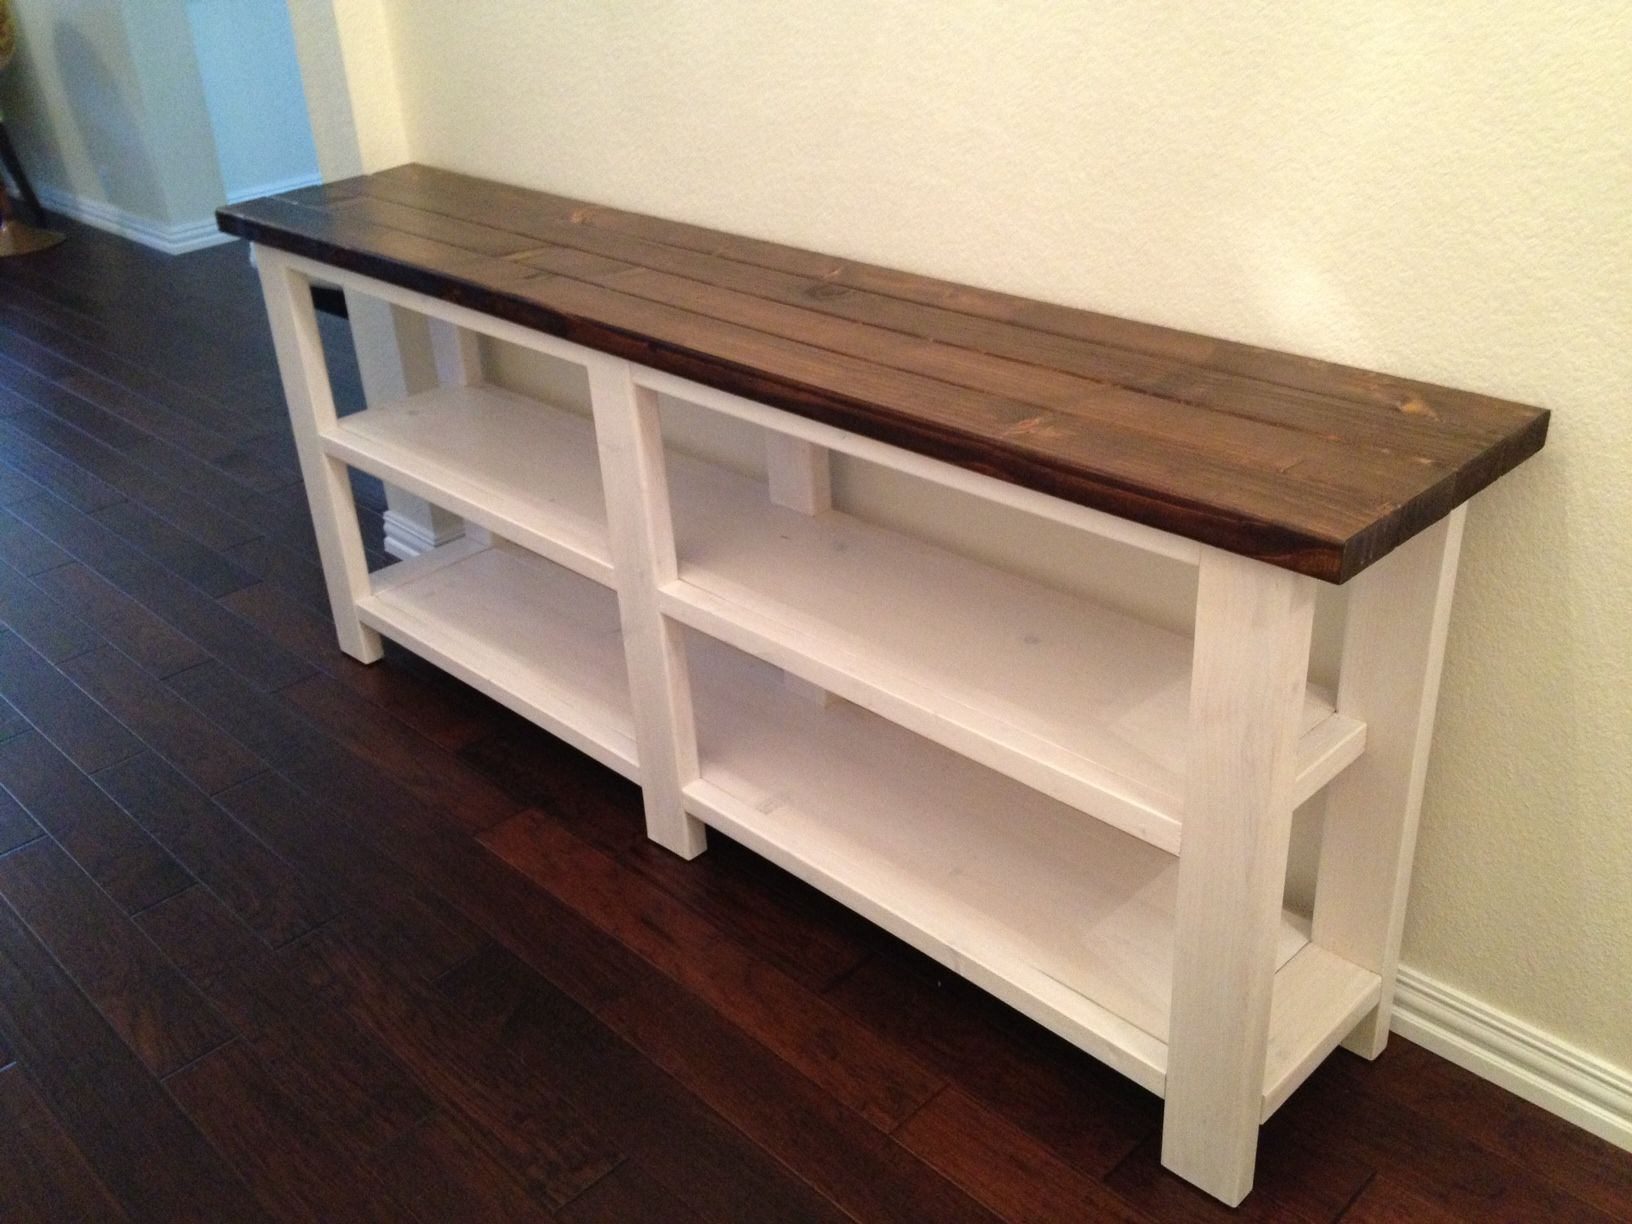 How to make a sofa table from 1 x 6 lumber - Rustic Chic Console Table